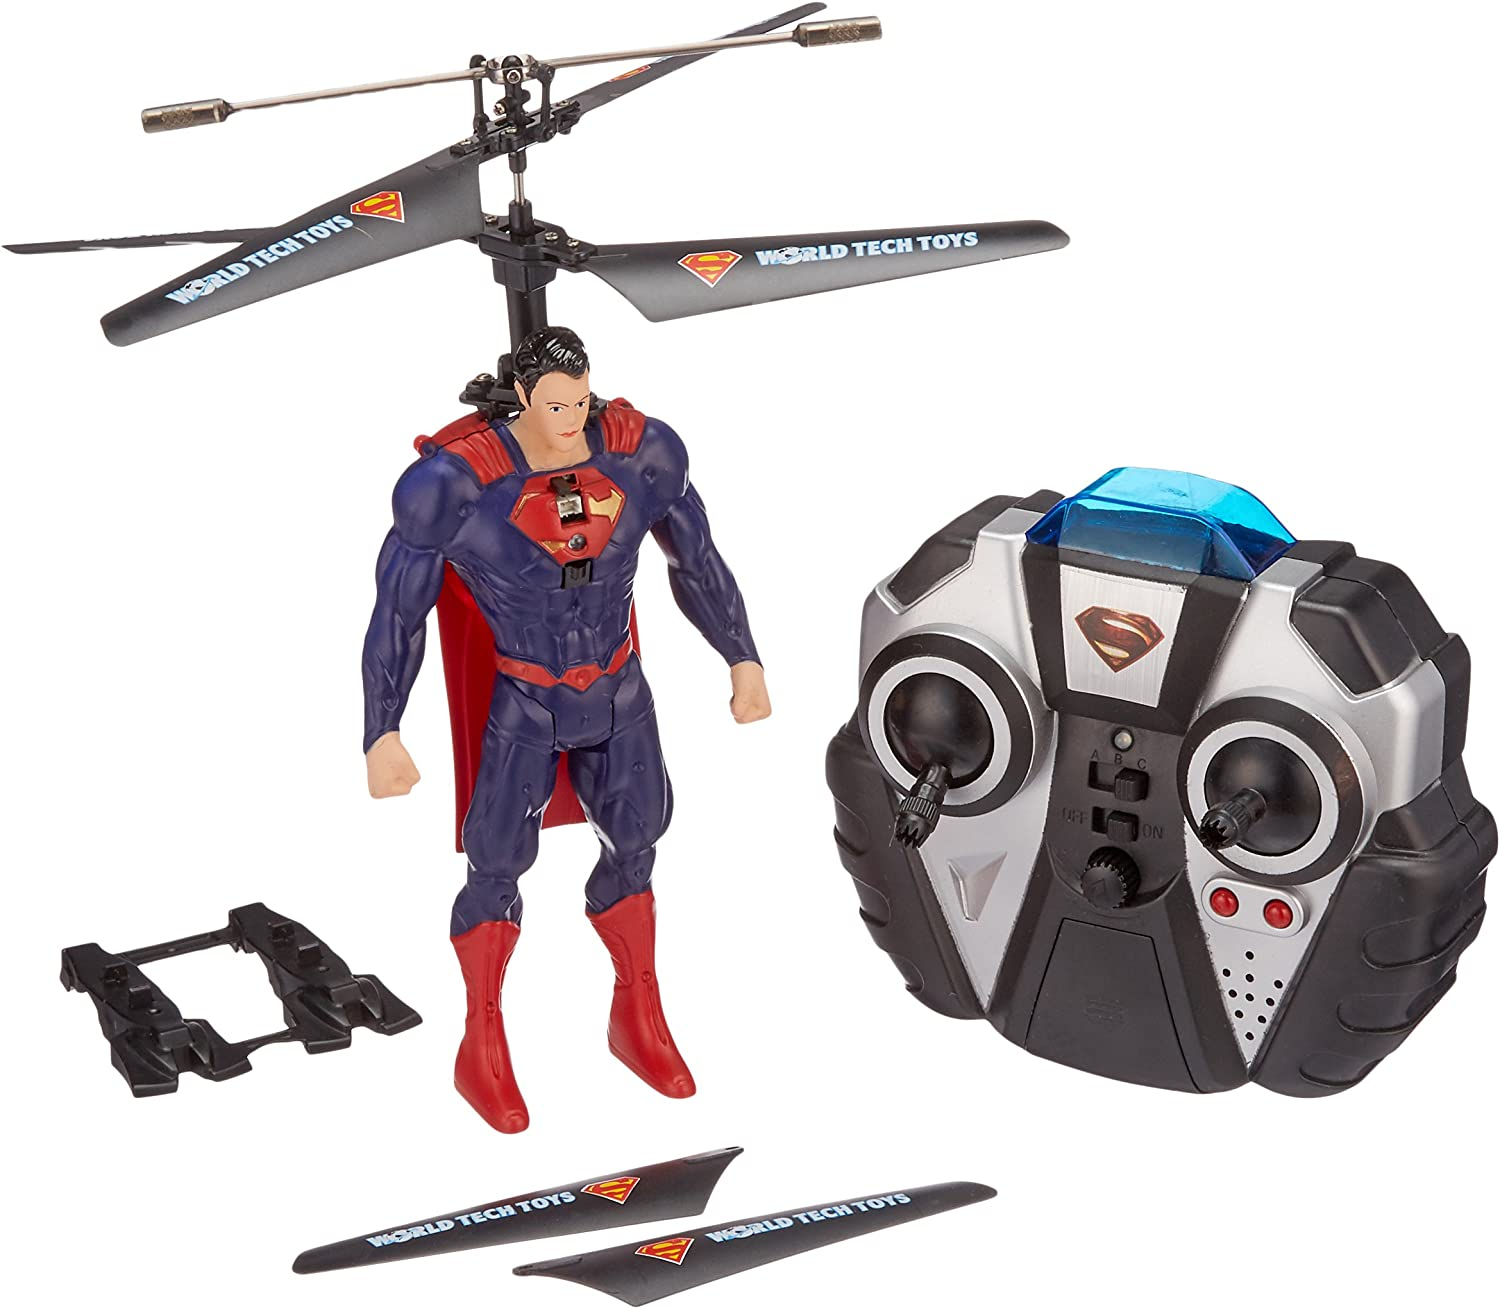 B00LOQVOIQ World Tech Toys Superman DC Comic 3.5 CH Helicopter 8197y97Pw5L